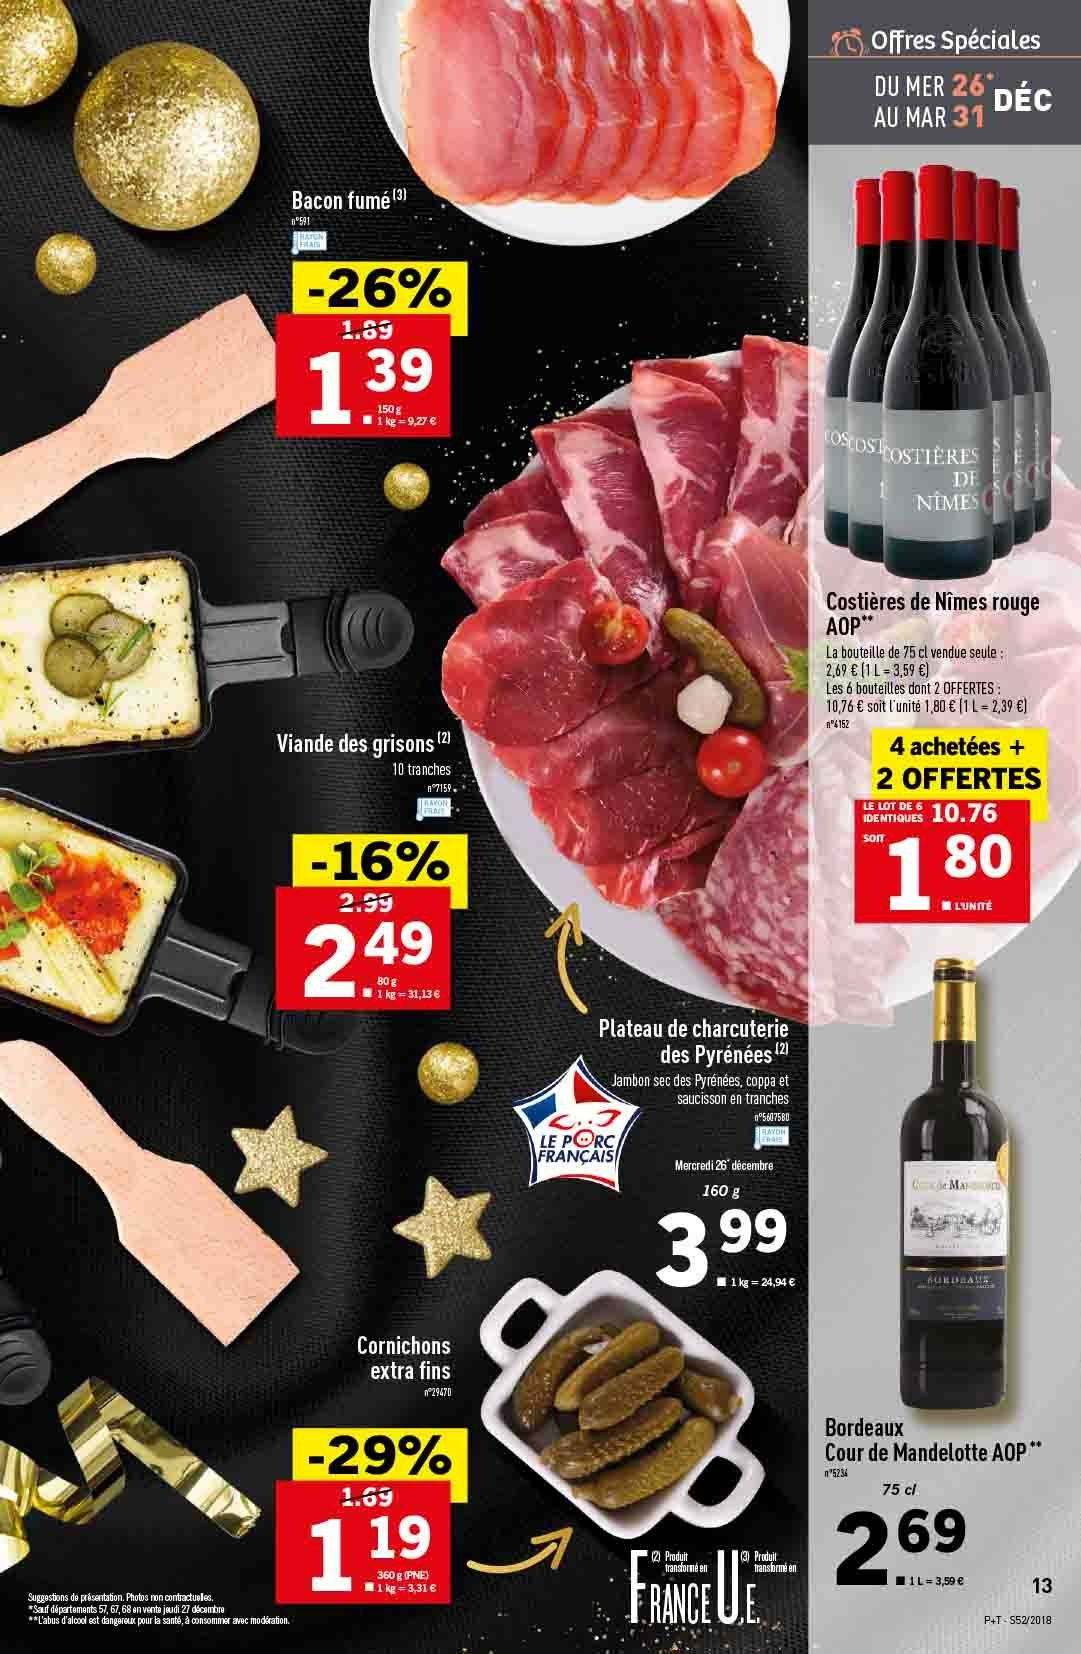 Catalogue Lidl - 26.12.2018 - 31.12.2018. Page 13.